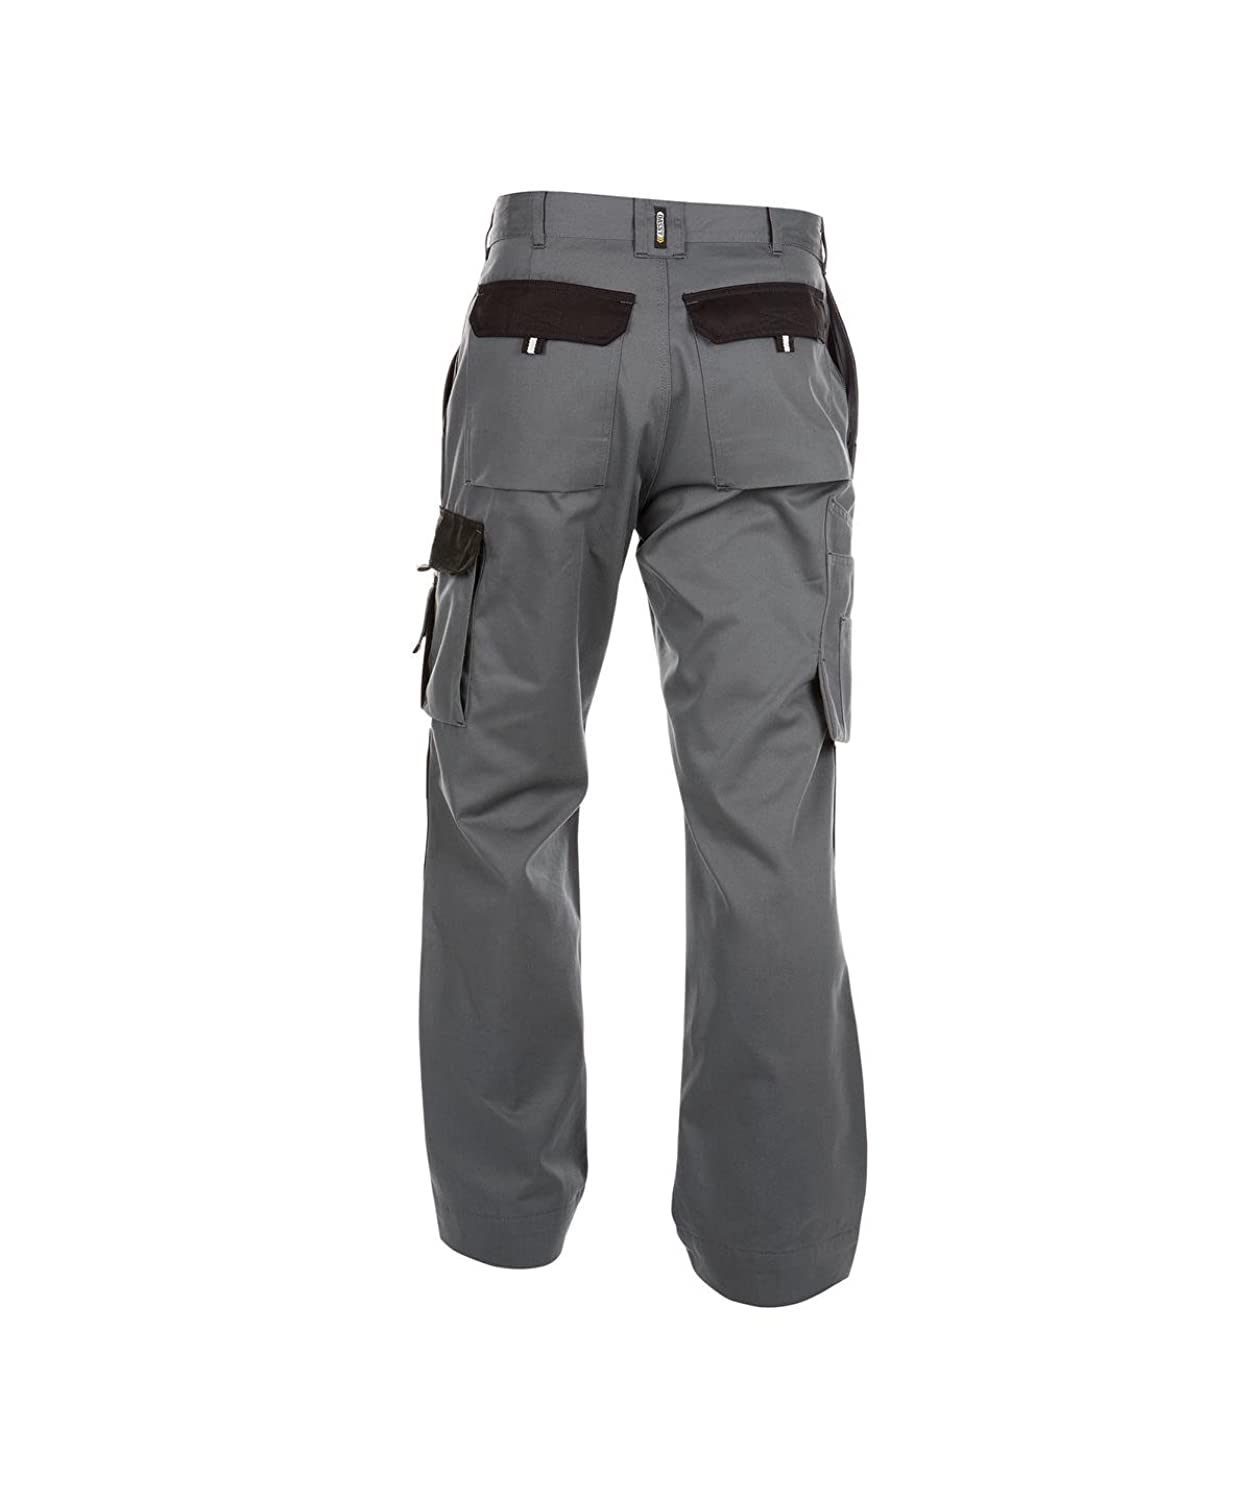 (44 -)DASSY TROUSER BOSTON PESCO64 (300 gr) GREY/BLACK MINUS